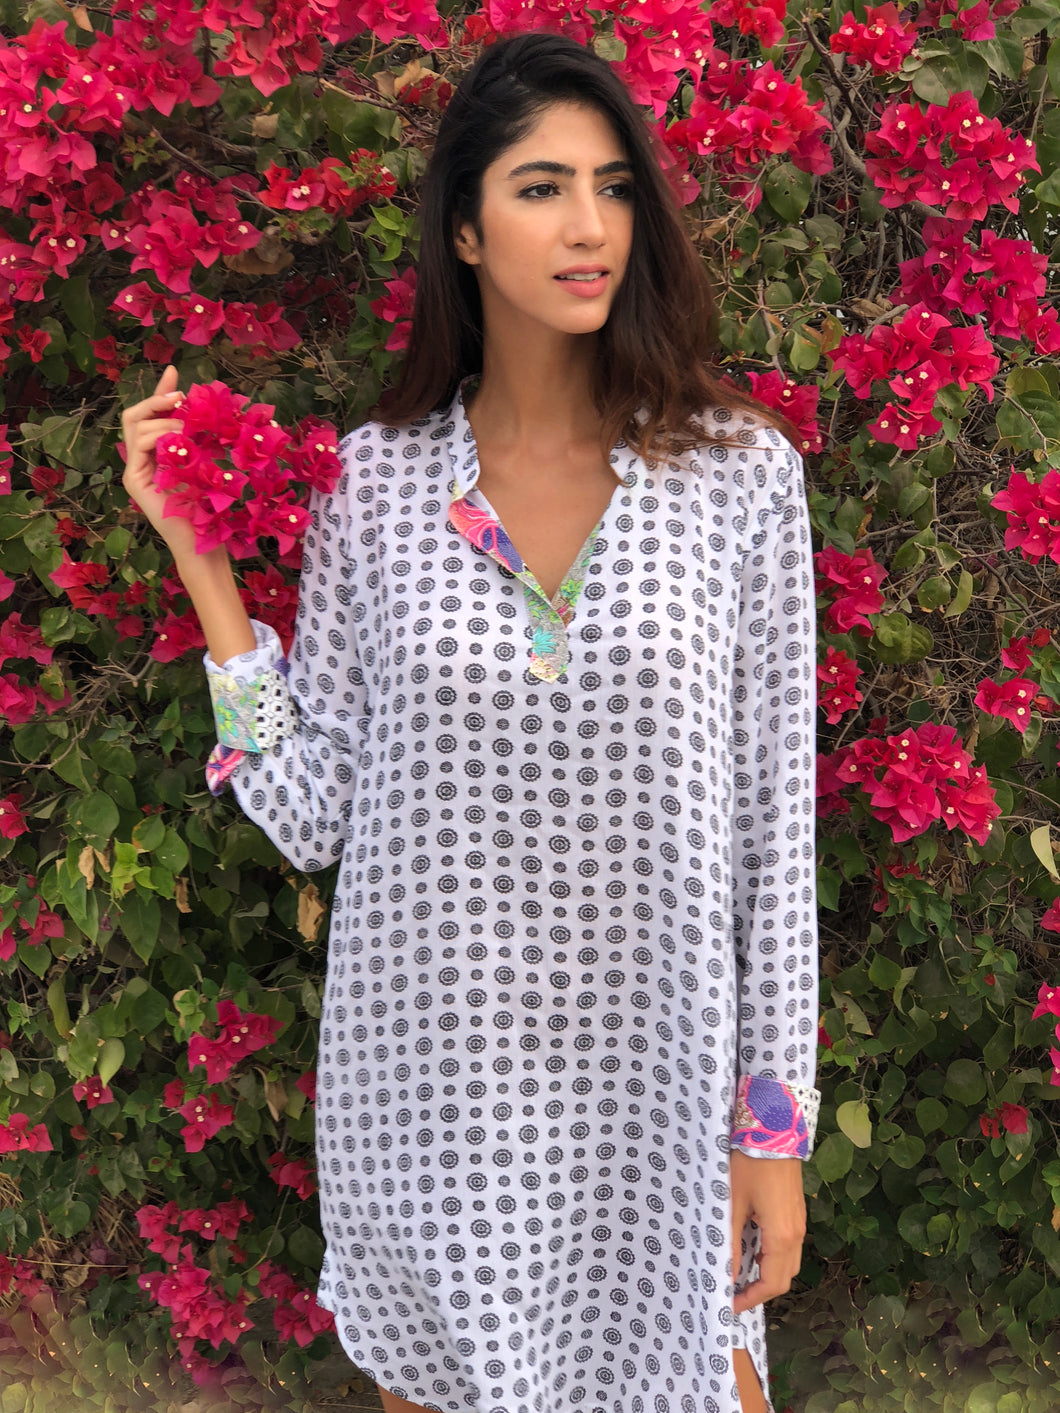 Sorrento shirt dress by Dunesi